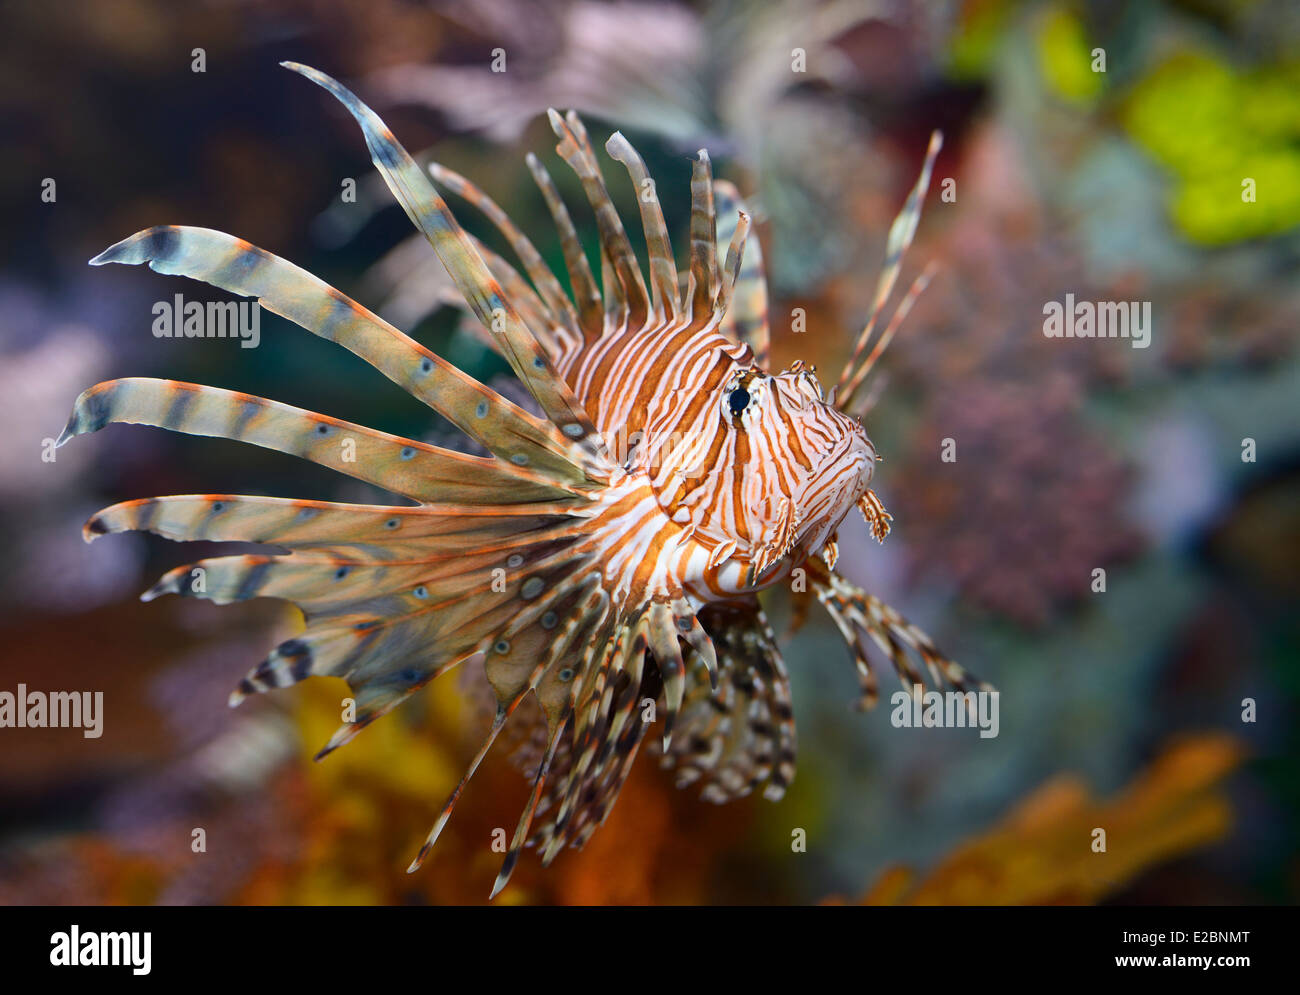 Colorful pectoral fins of Pterois volitans or red lionfish with venomous spiky fin rays in Ripleys Aquarium Toronto - Stock Image